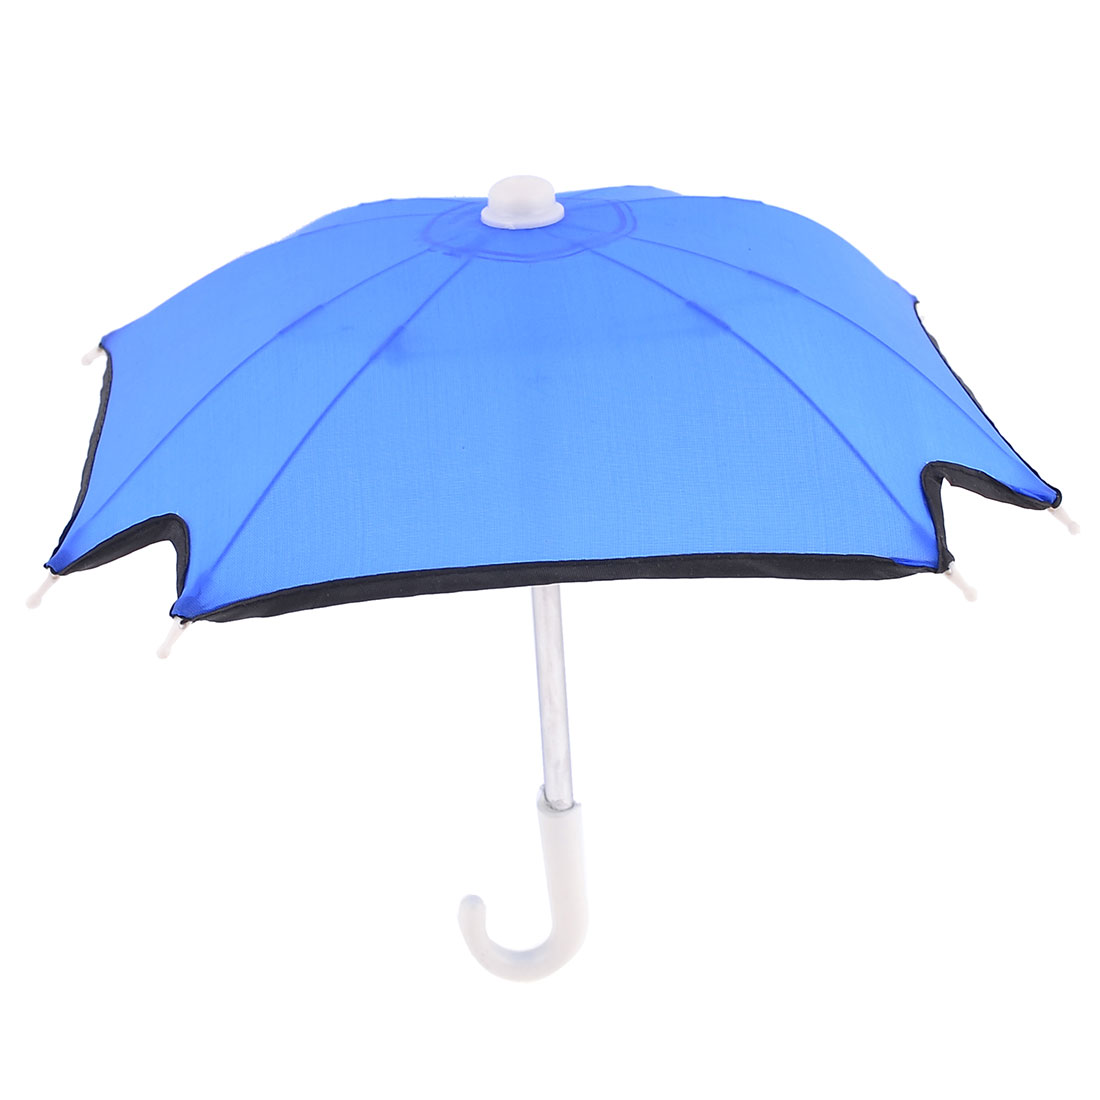 Outdoor Sky Blue White Mini Umbrella Toy for Children